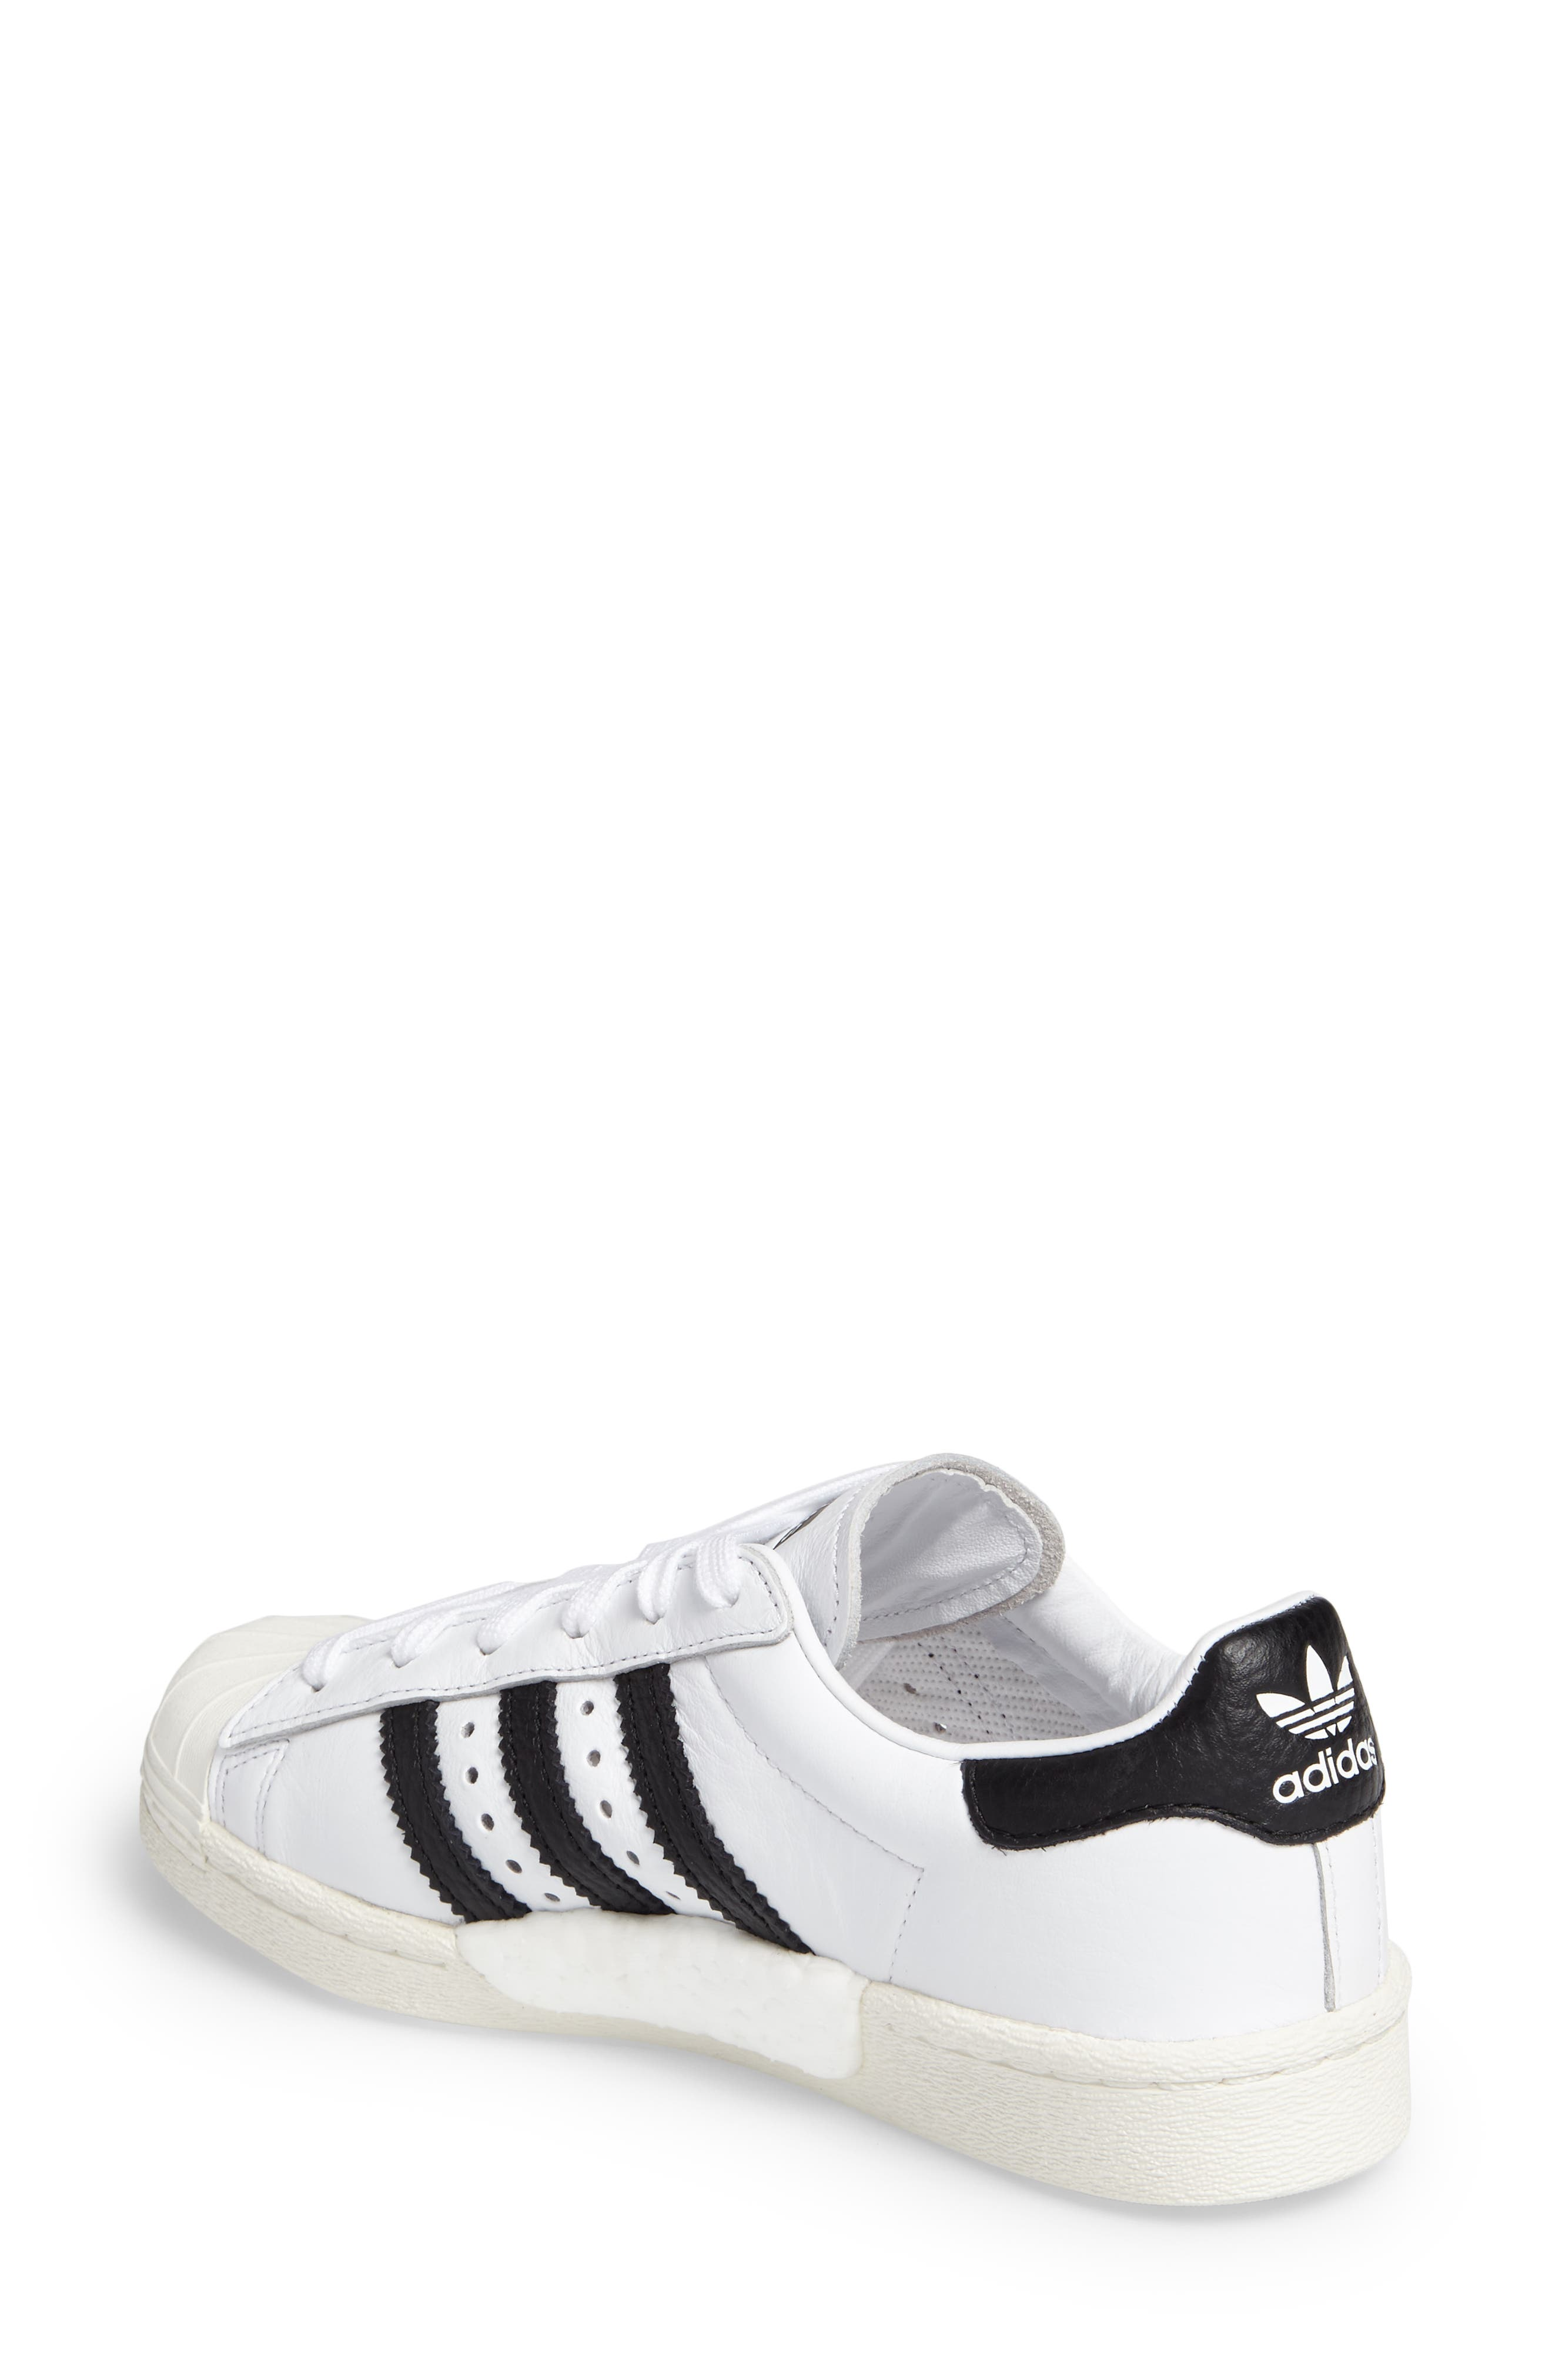 Alternate Image 2  - adidas Superstar Boost Sneaker (Women)